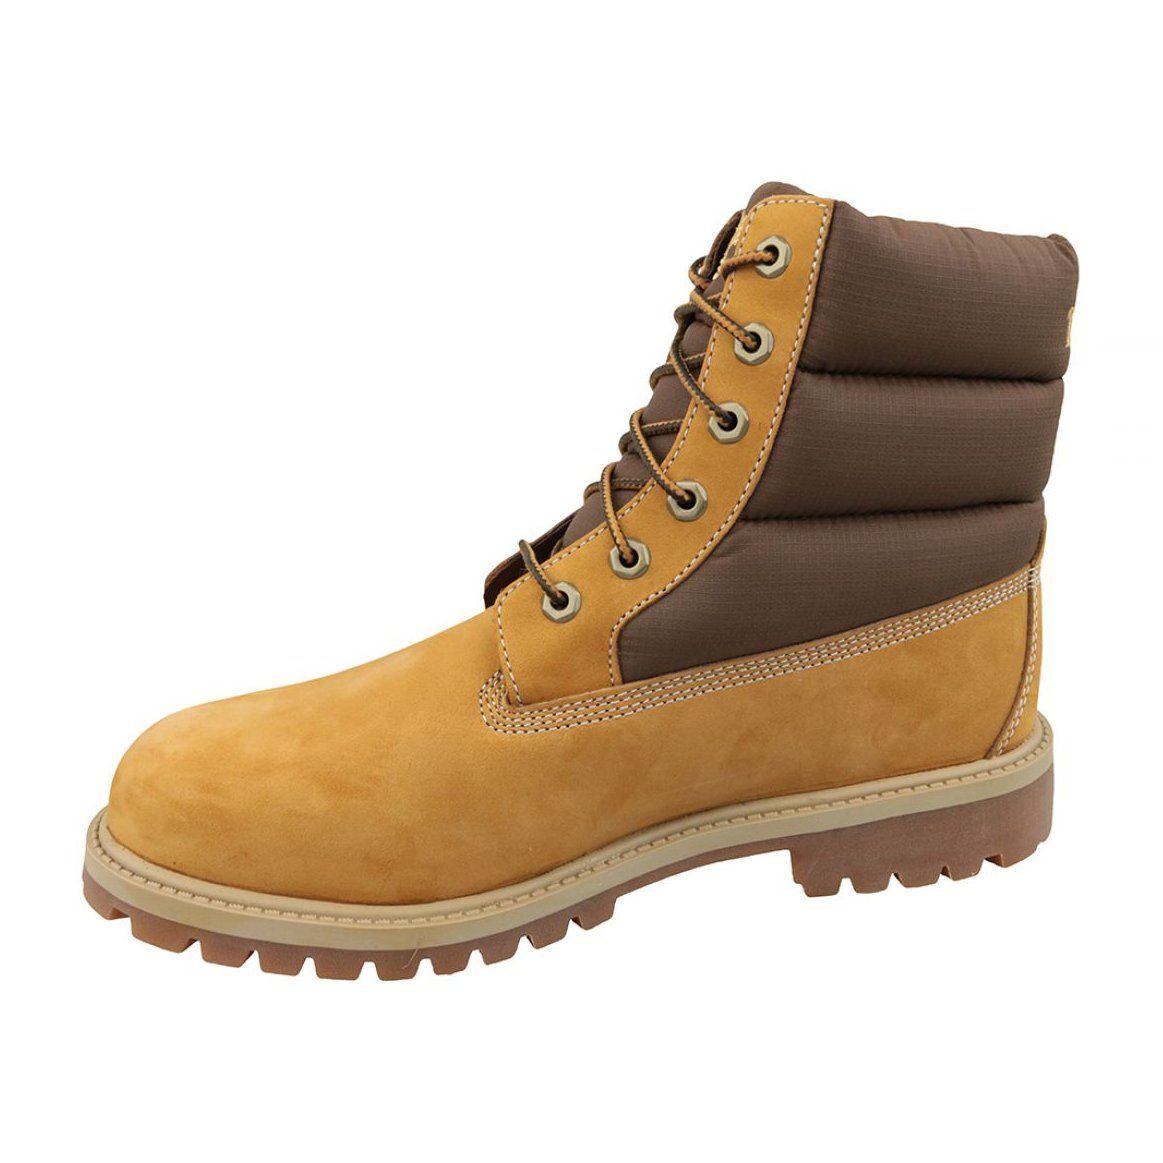 Buty Zimowe Timberland 6 In Quilit Boot Jr C1790r Brazowe Winter Boots Boots Timberland 6